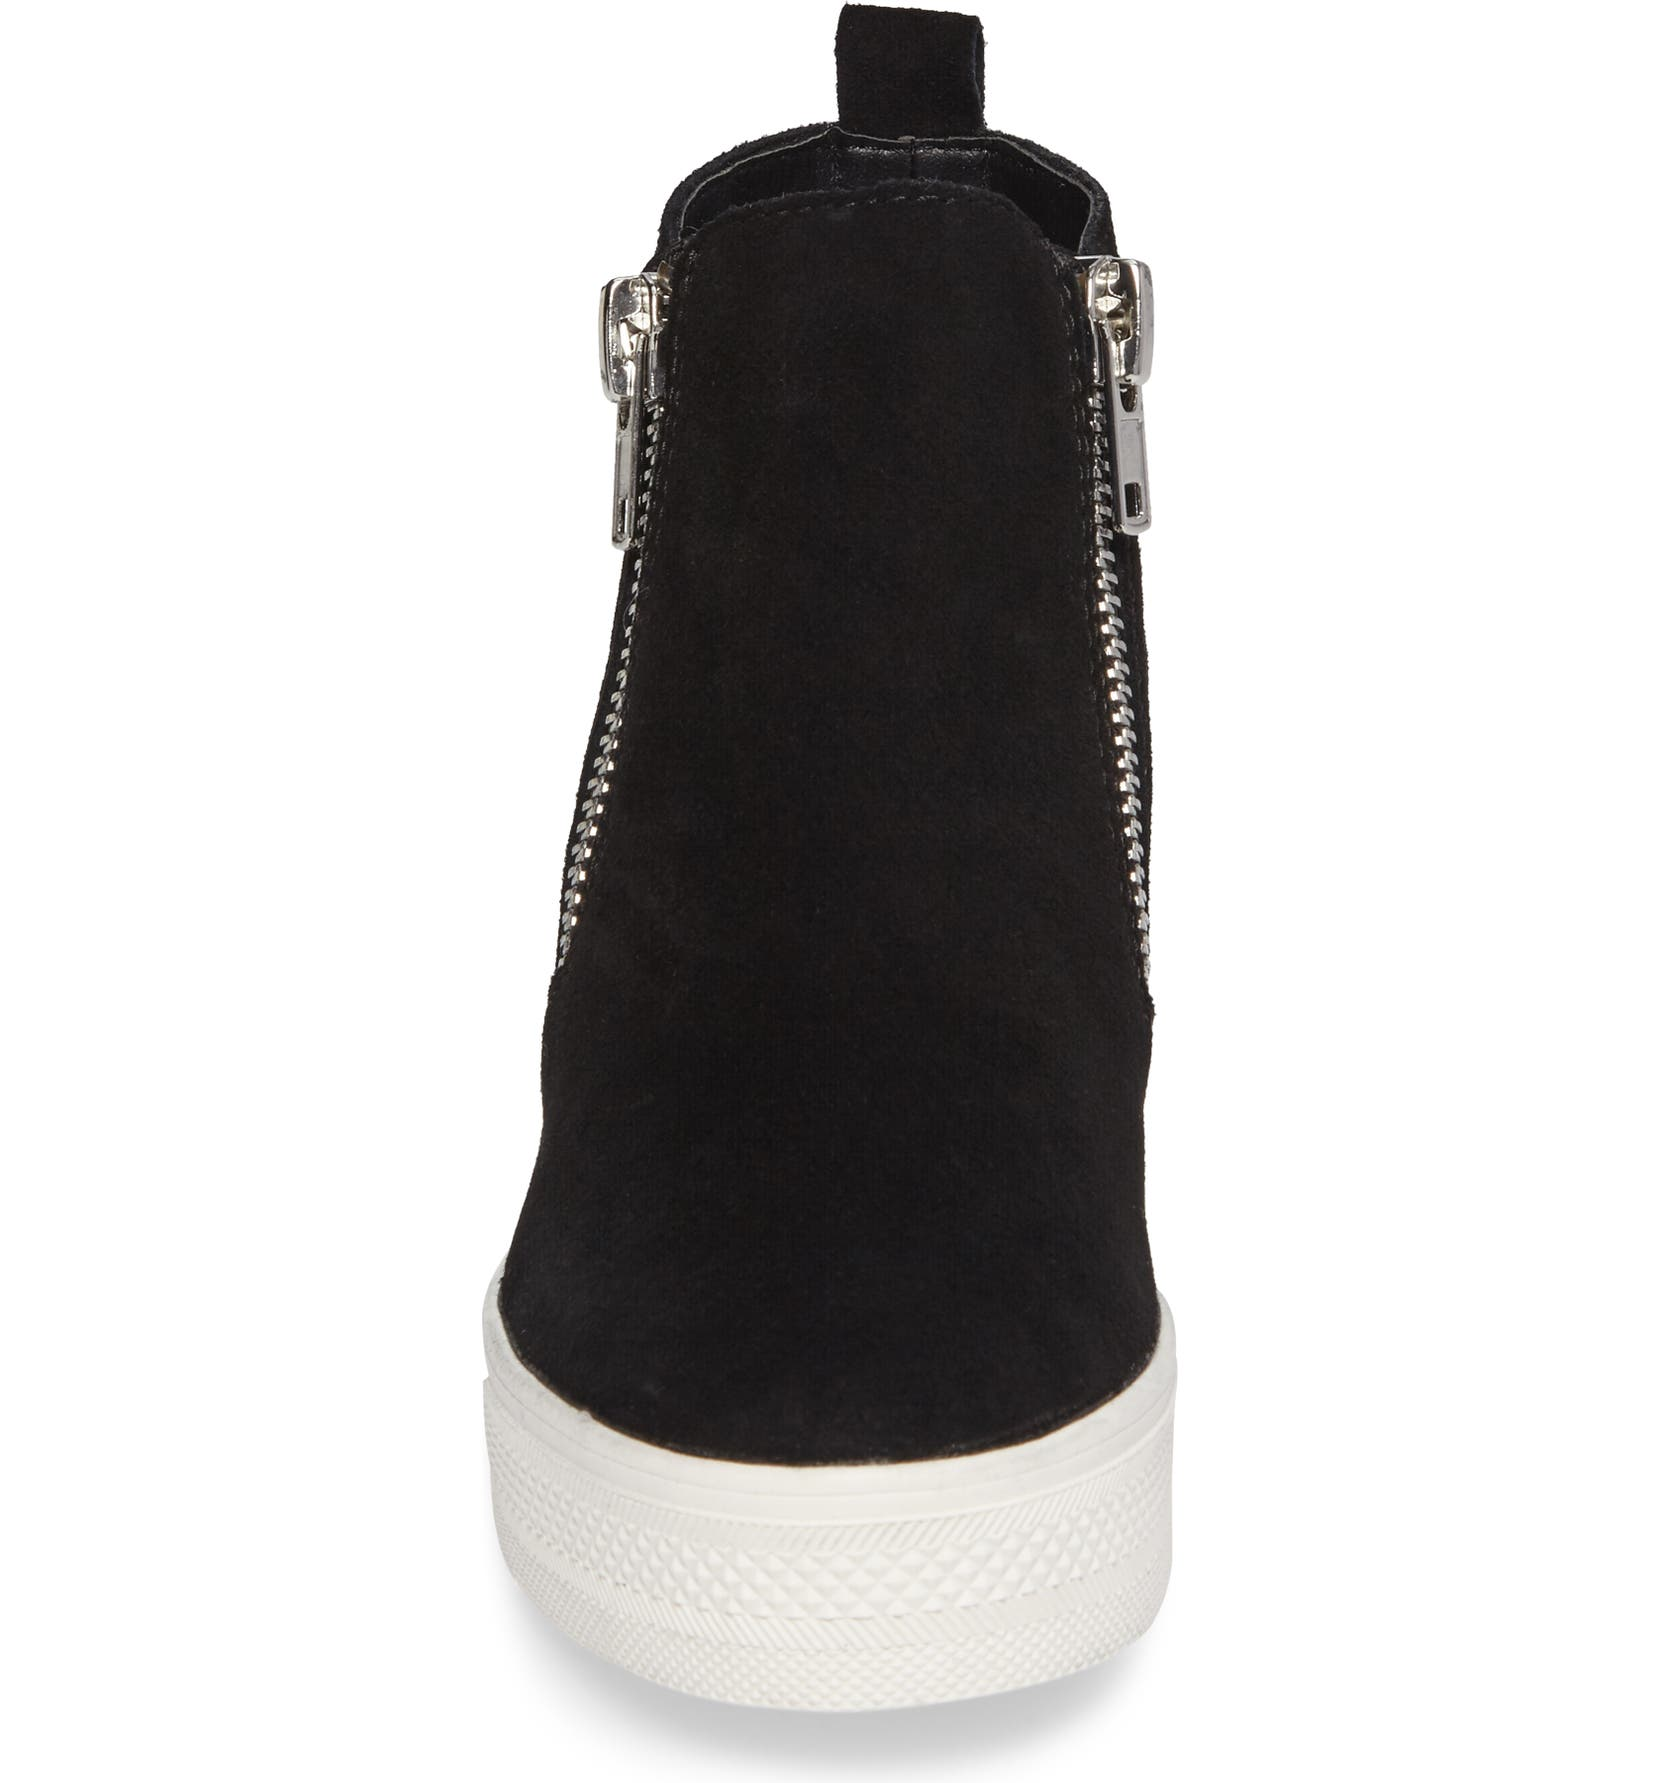 ce3652e0b93 Steve Madden Wedgie High Top Platform Sneaker (Women)